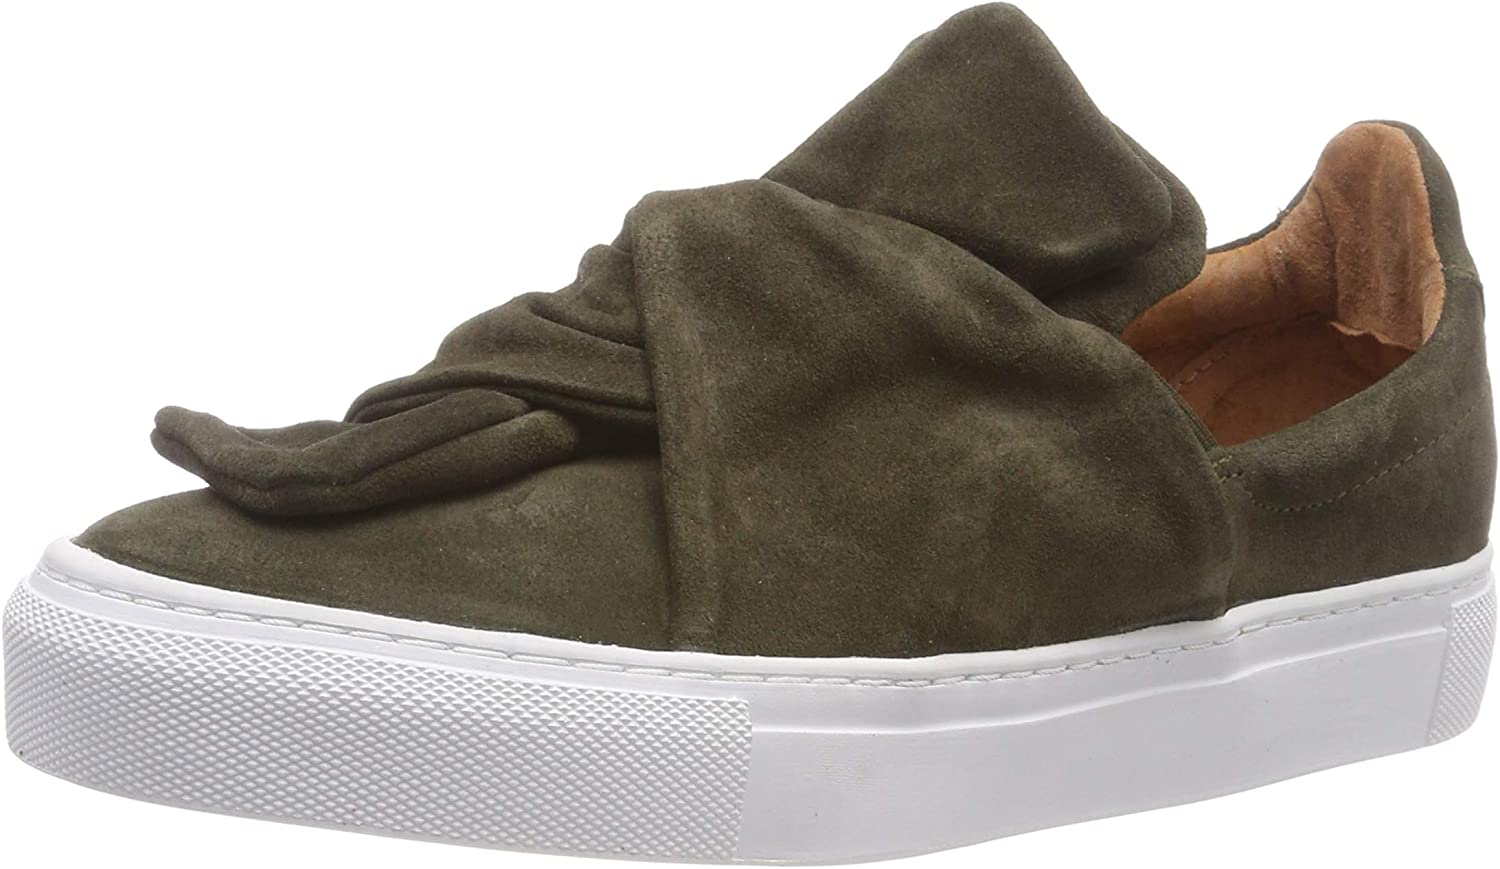 Pavement Women's Ava Loop Slip on Trainers